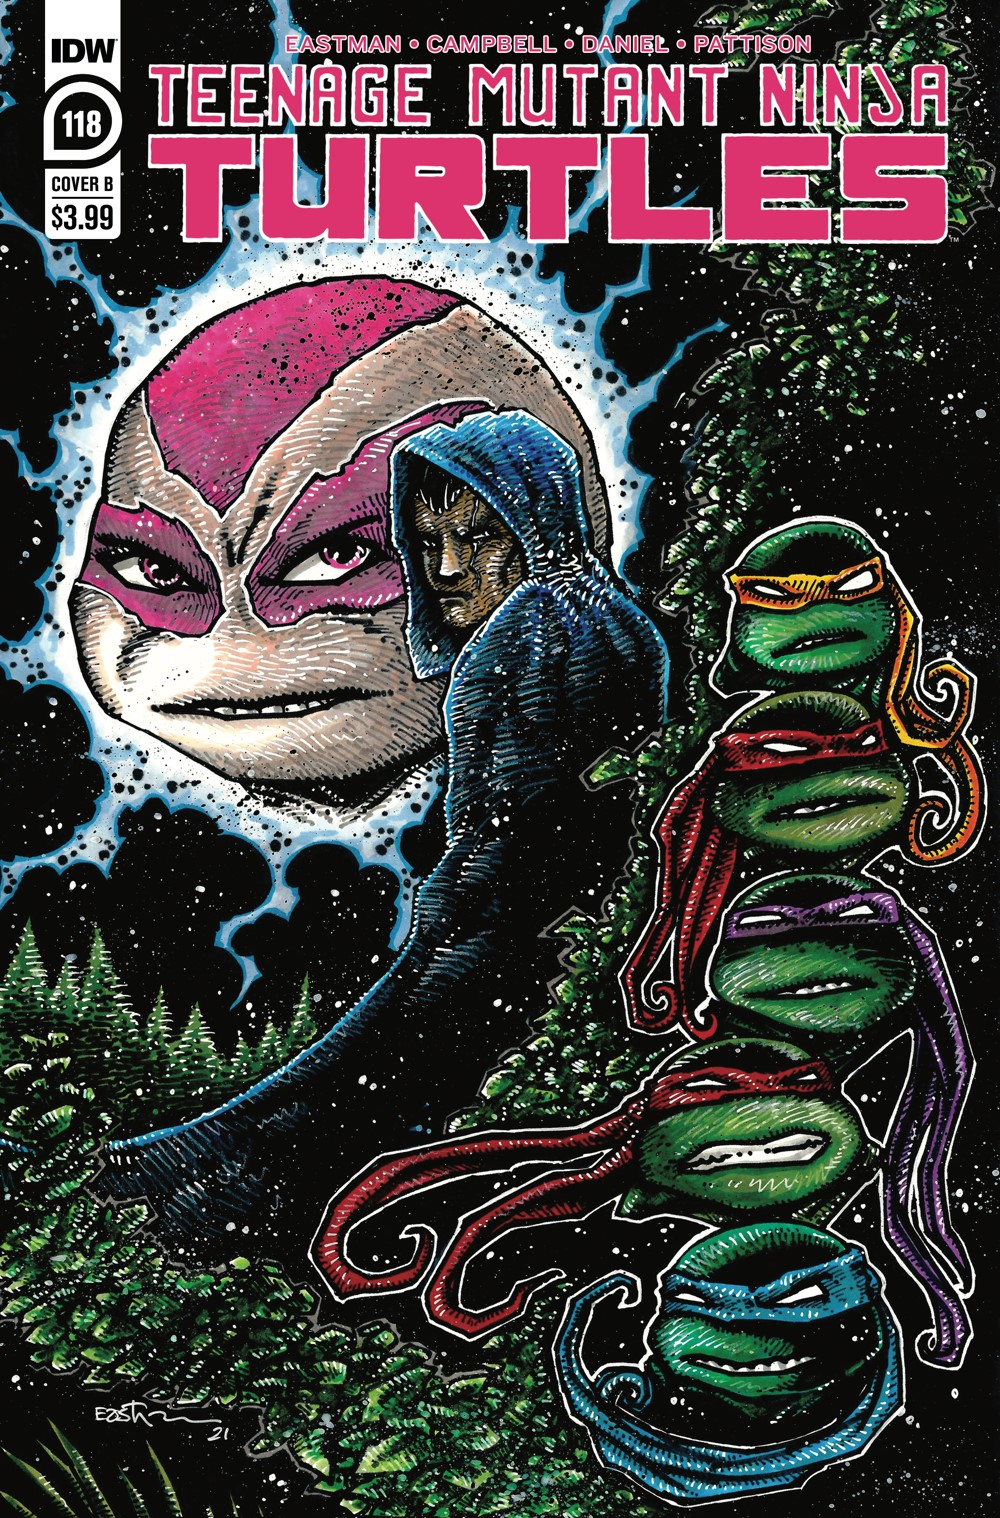 TMNT118_cvrB ComicList: IDW Publishing New Releases for 06/23/2021